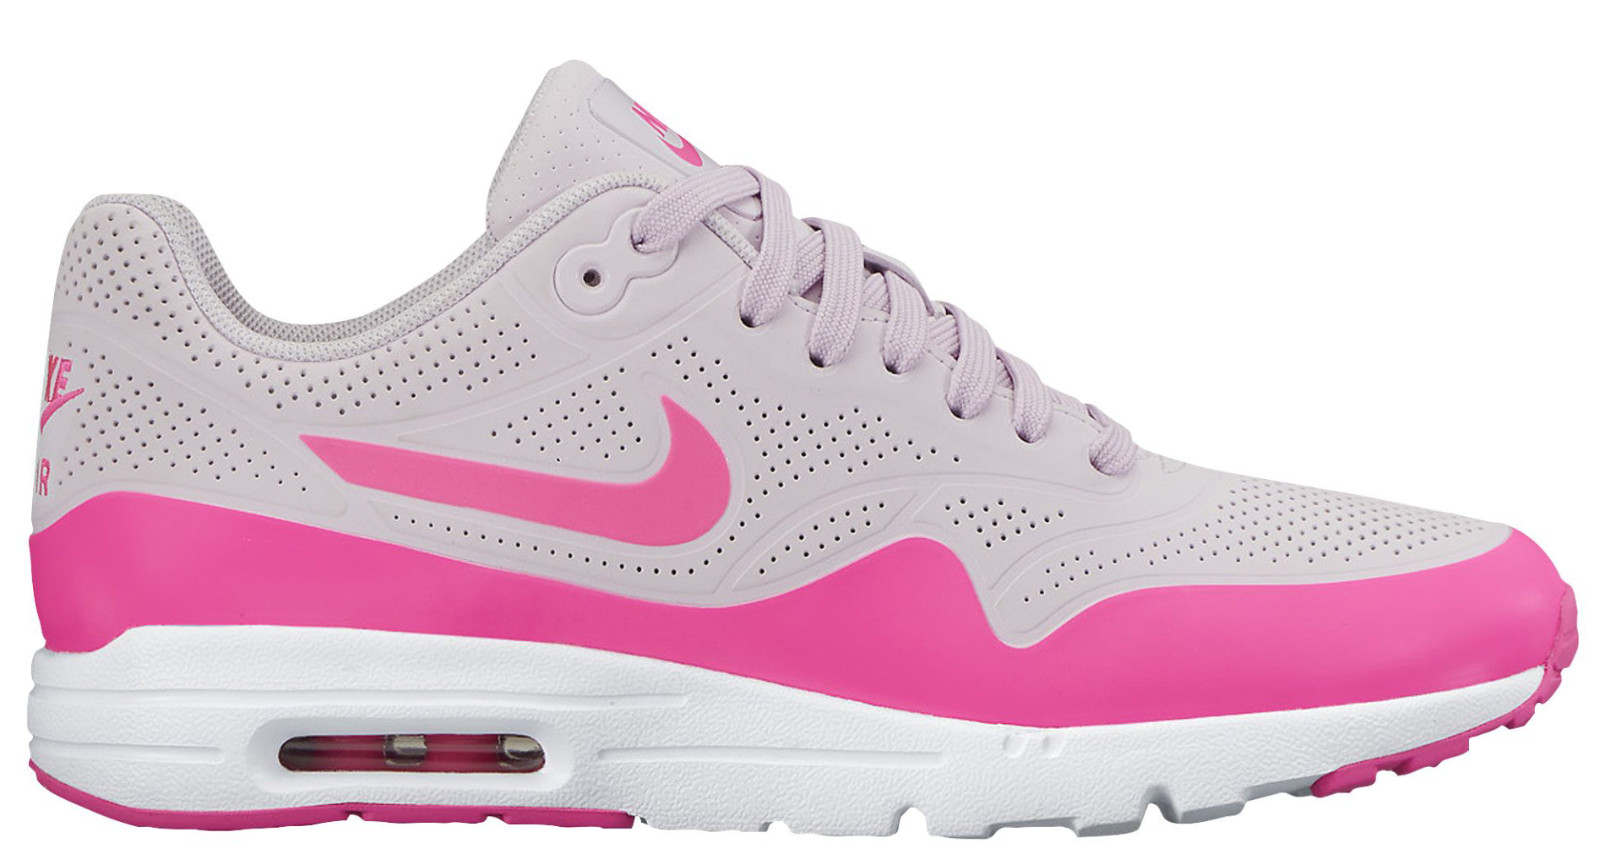 NEW Femme Nike Air Max 1 Ultra Chaussures Taille: 5 Color: Rose/Gris